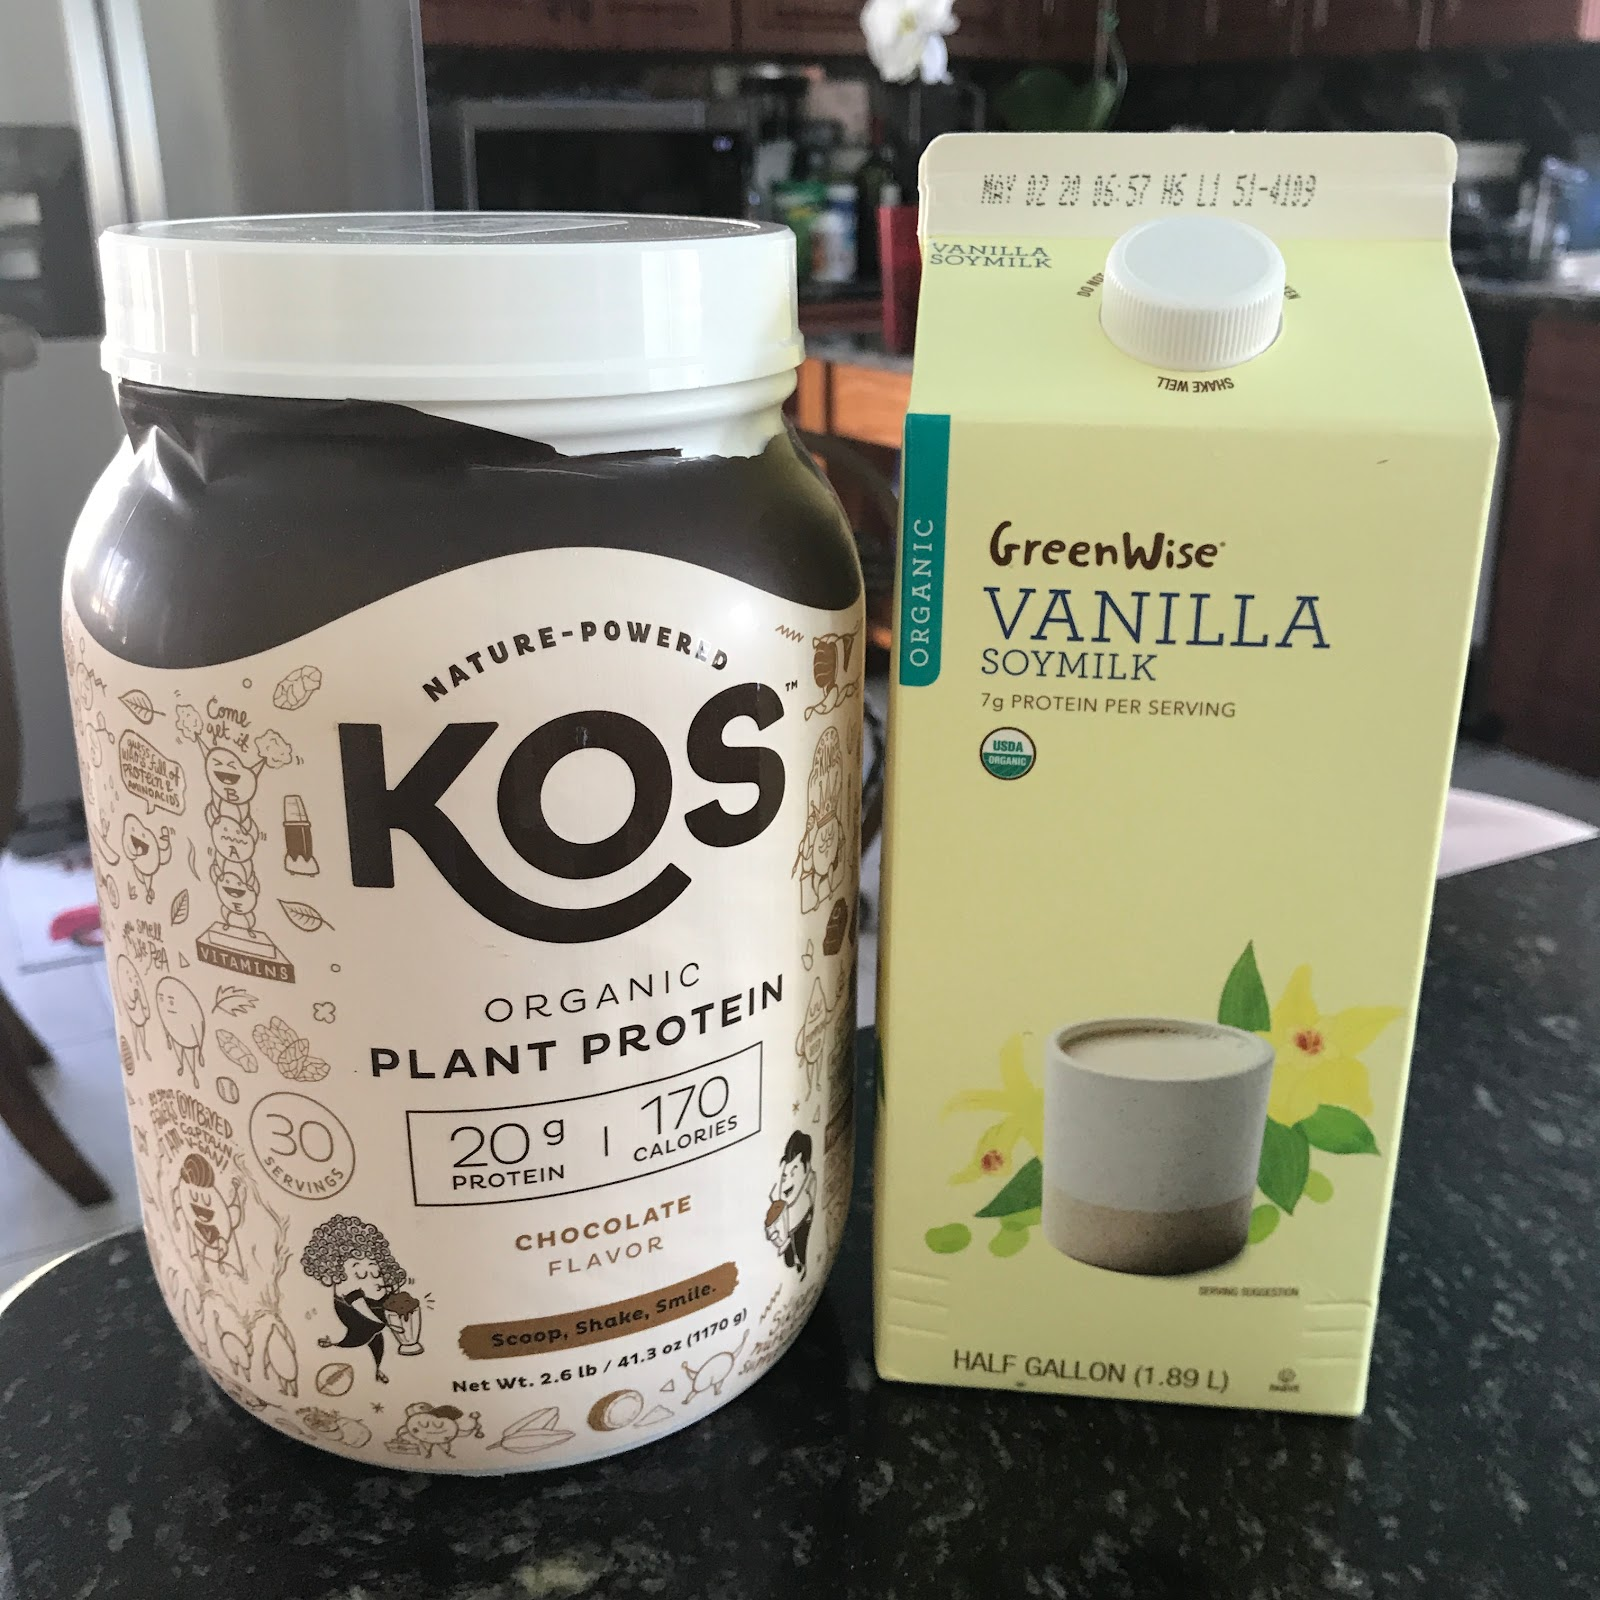 KOS plant protein with soy milk.